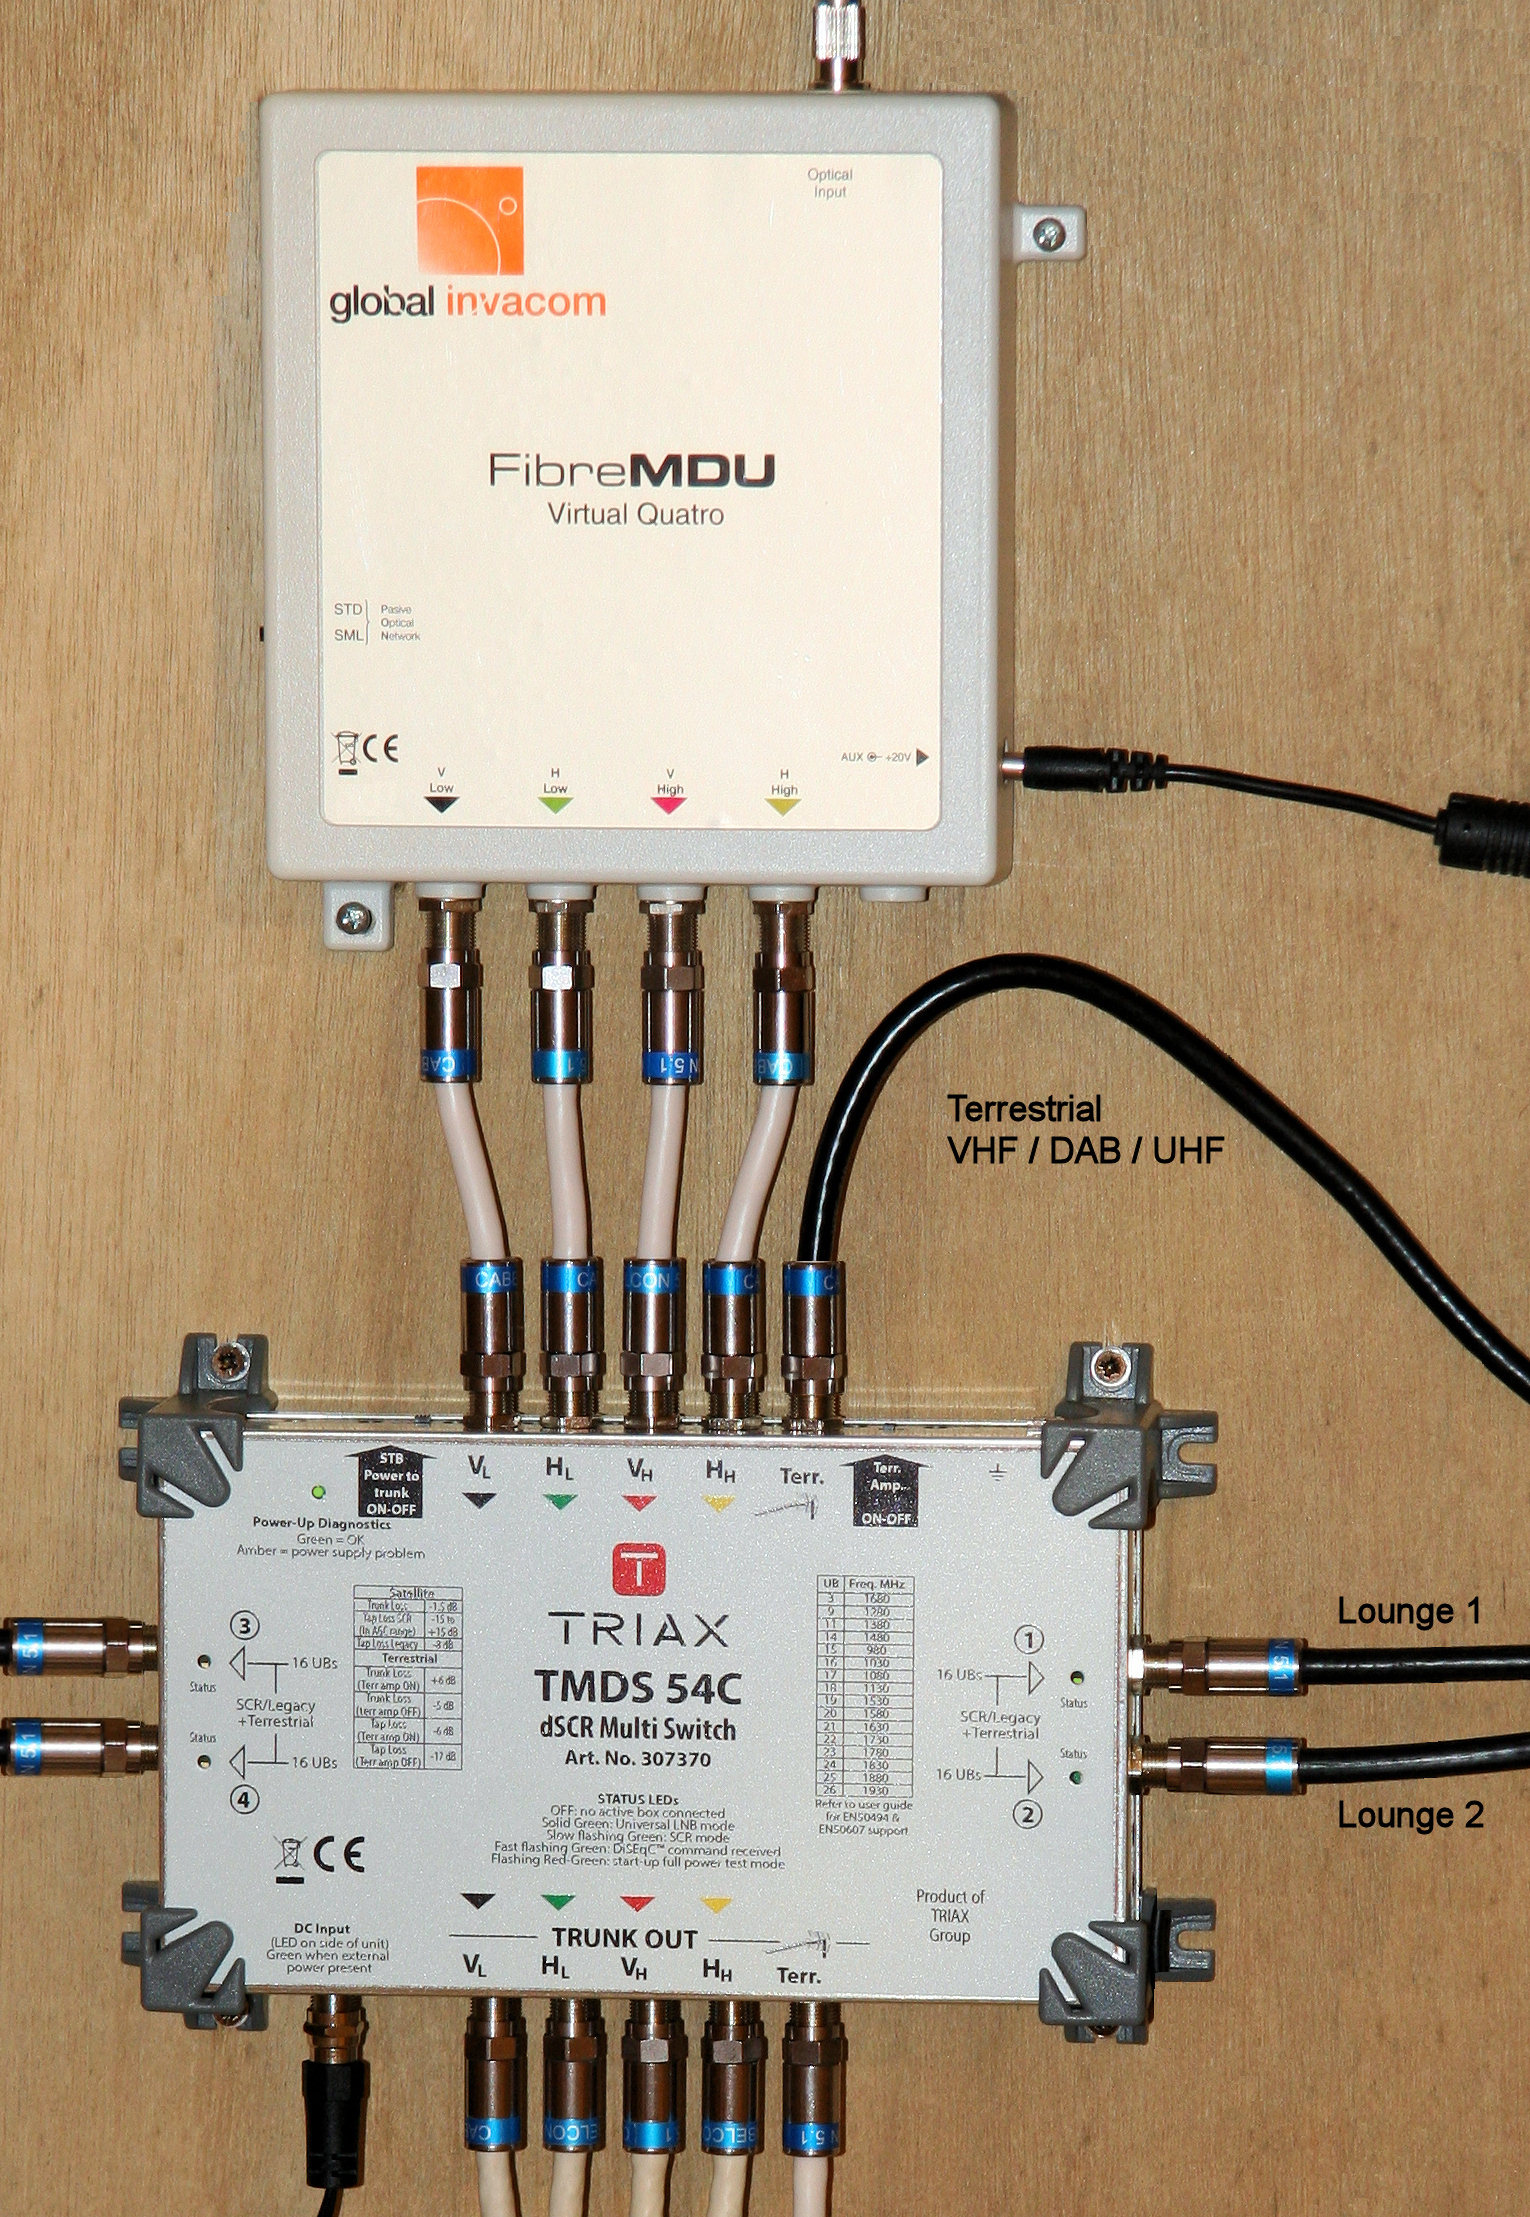 21550i565FE79BBCCBC04C?v=1.0 sky q and distibution multiswitch sky community triax multiswitch wiring diagram at readyjetset.co